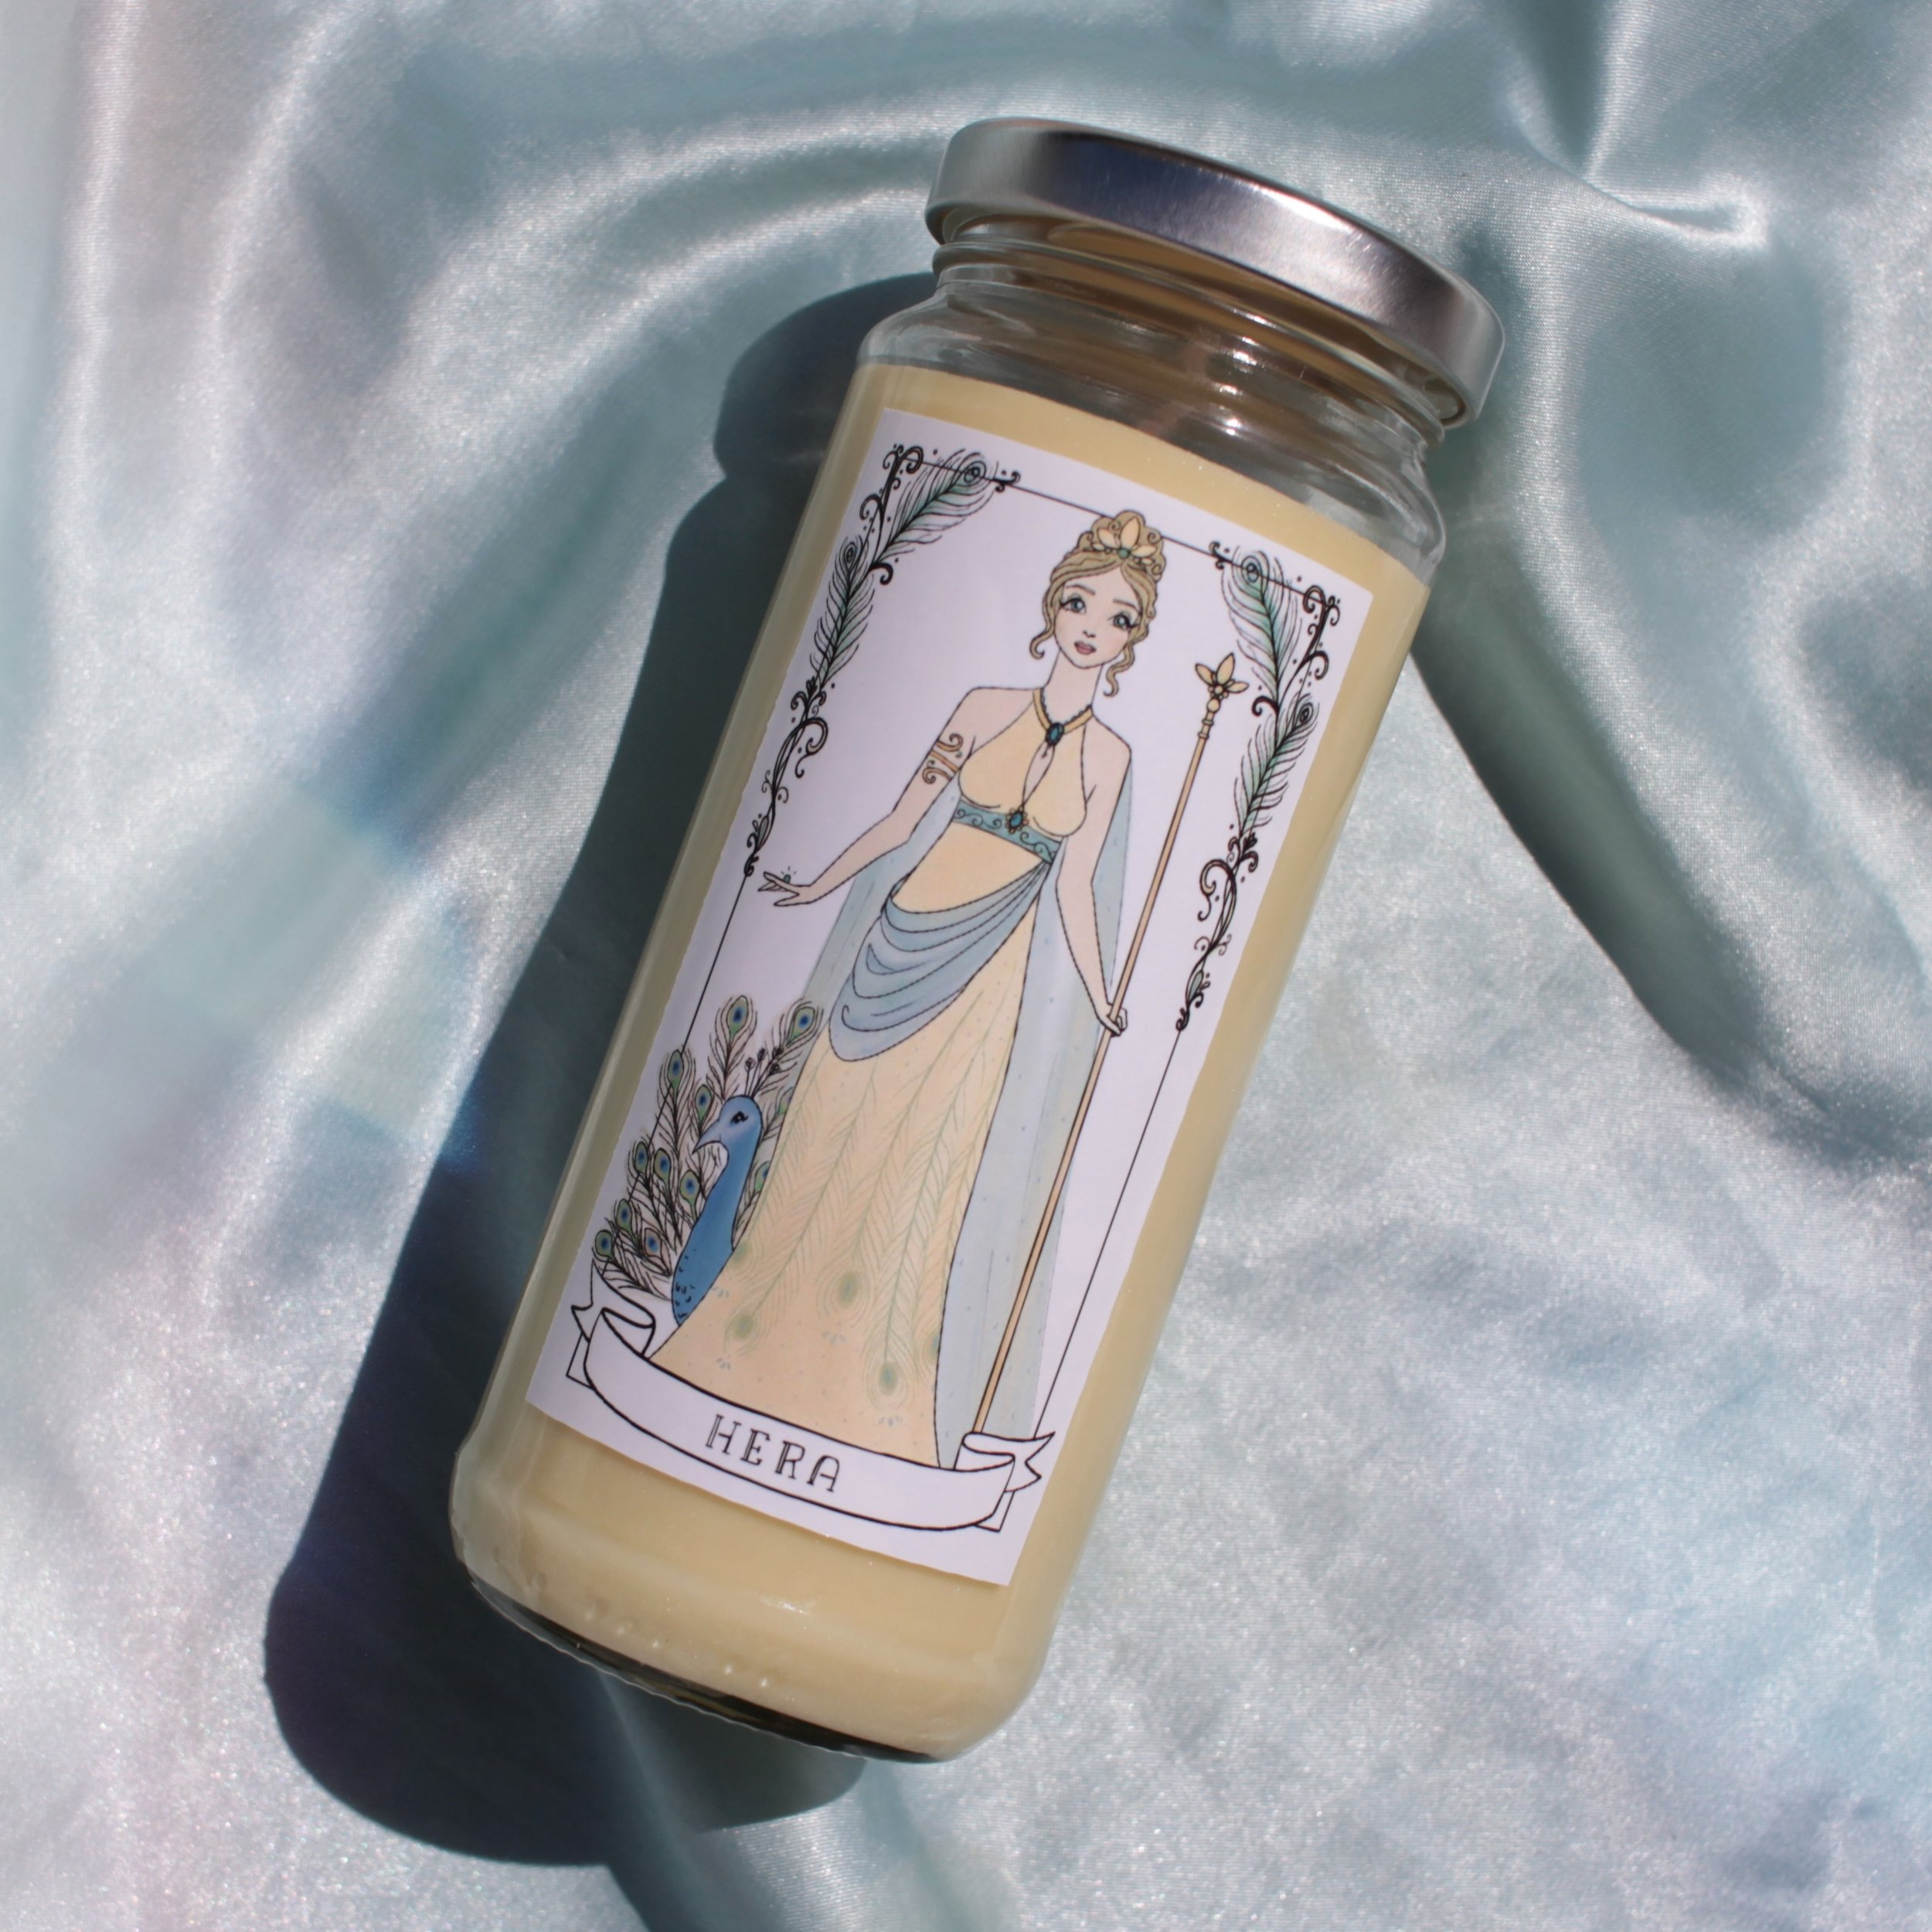 Candle & Photo by Holly Cassell; Illustration by Kathy d. Clark